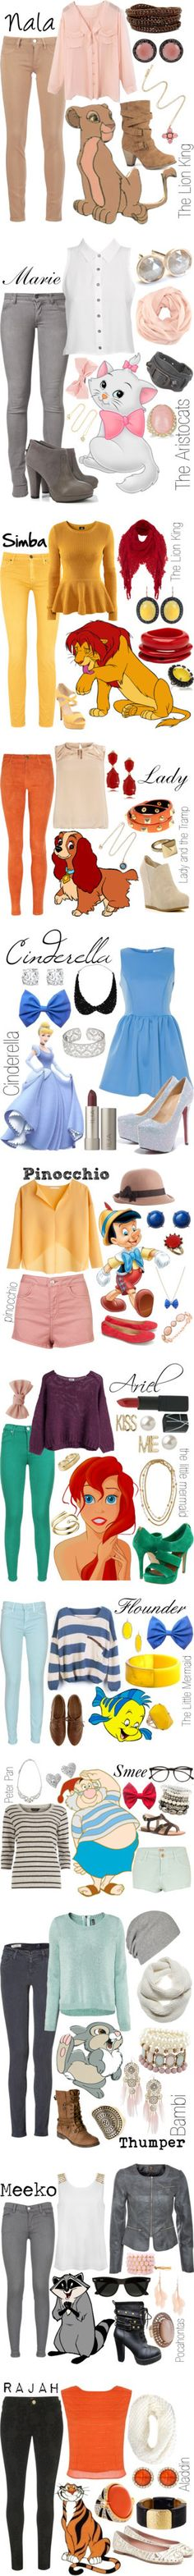 """✦Disney Inspired Looks✦"" by koolkid4ever ❤ liked on Polyvore"